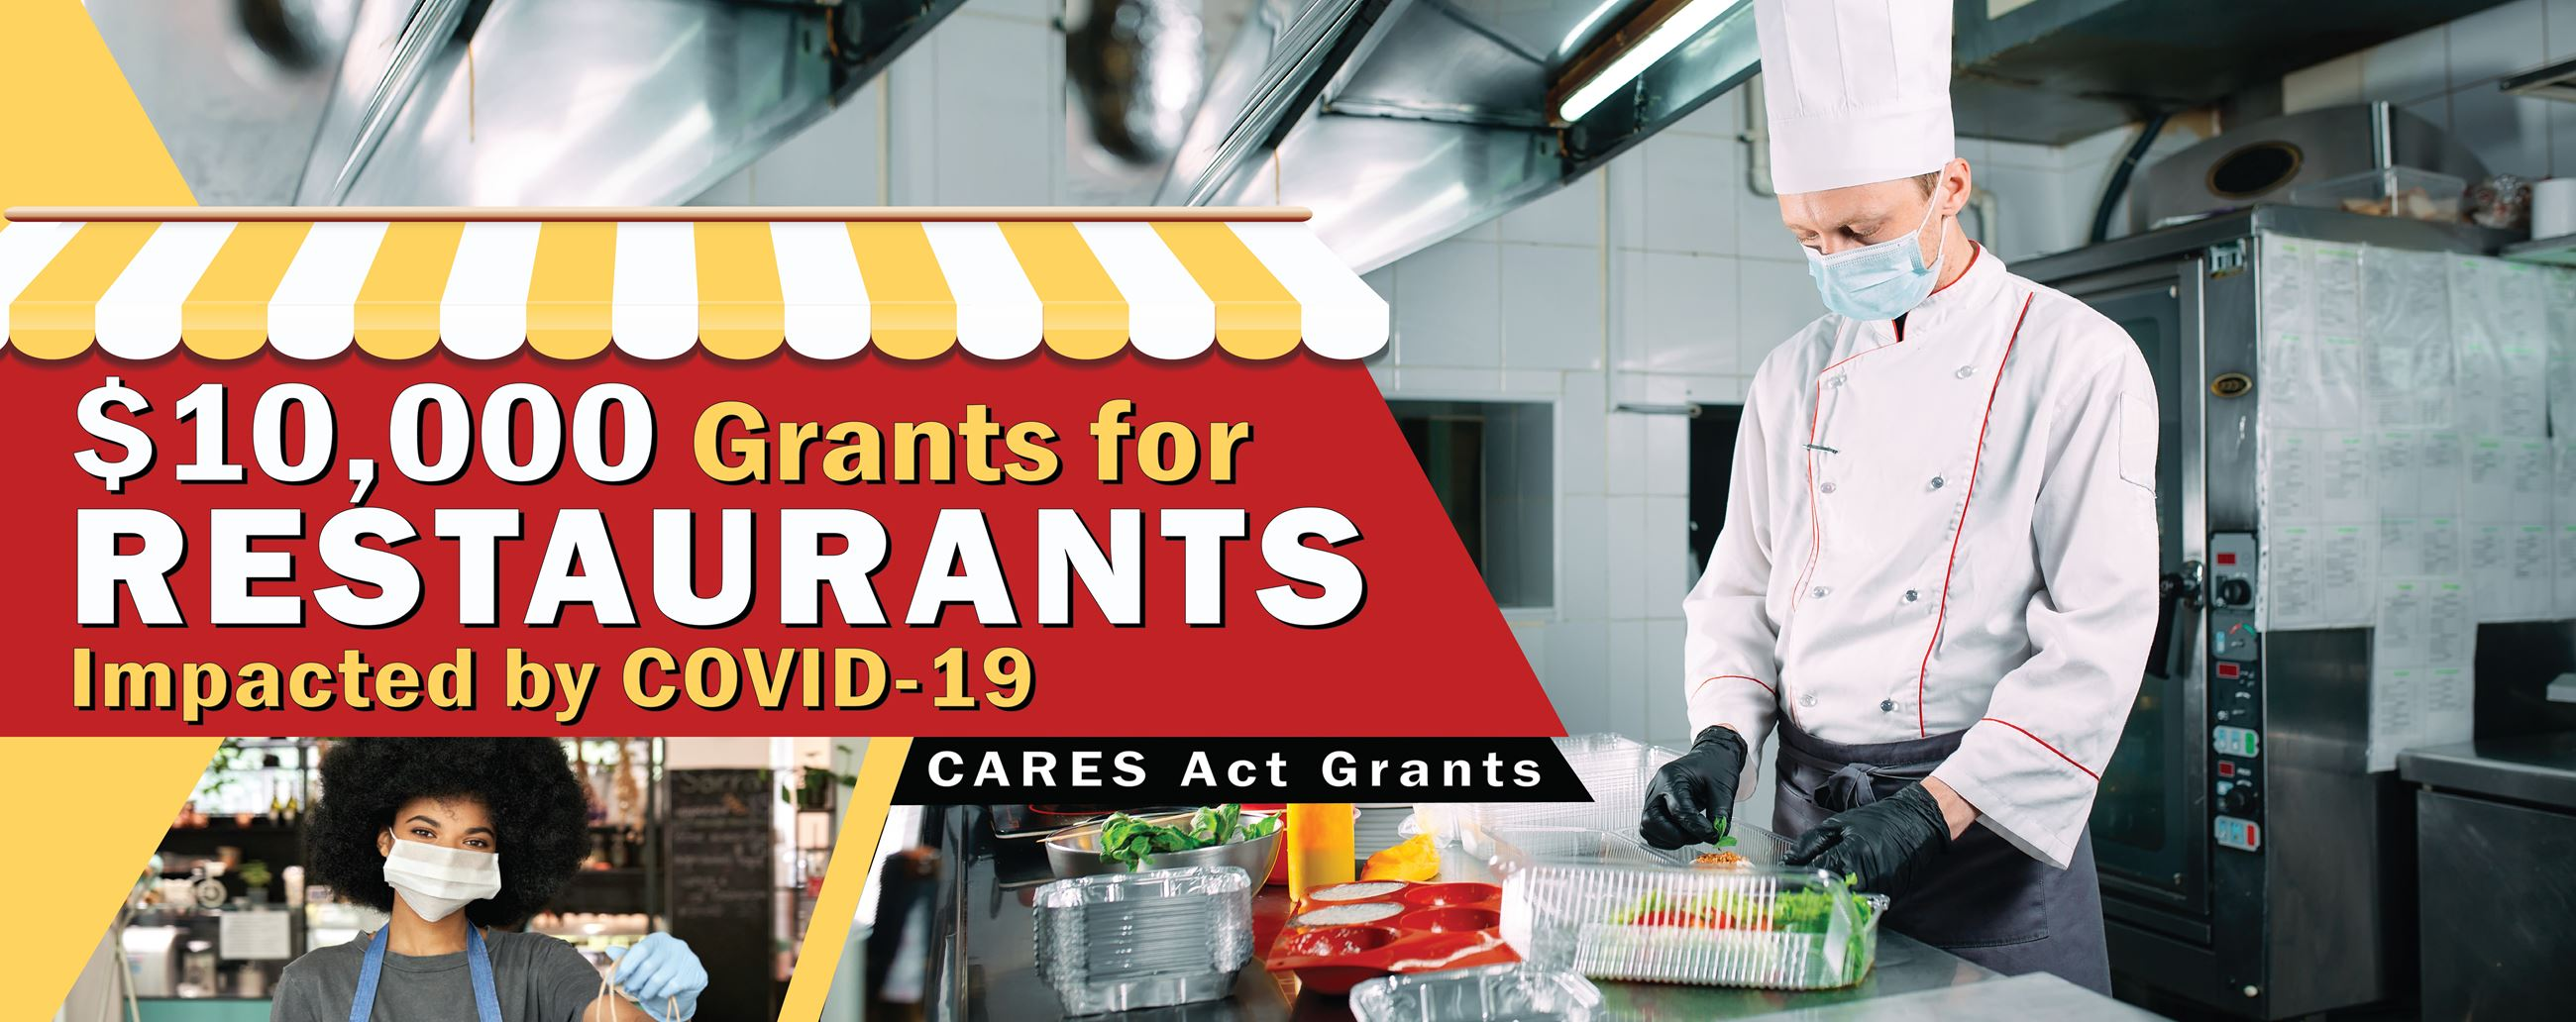 restaurant grant funding website graphic-01